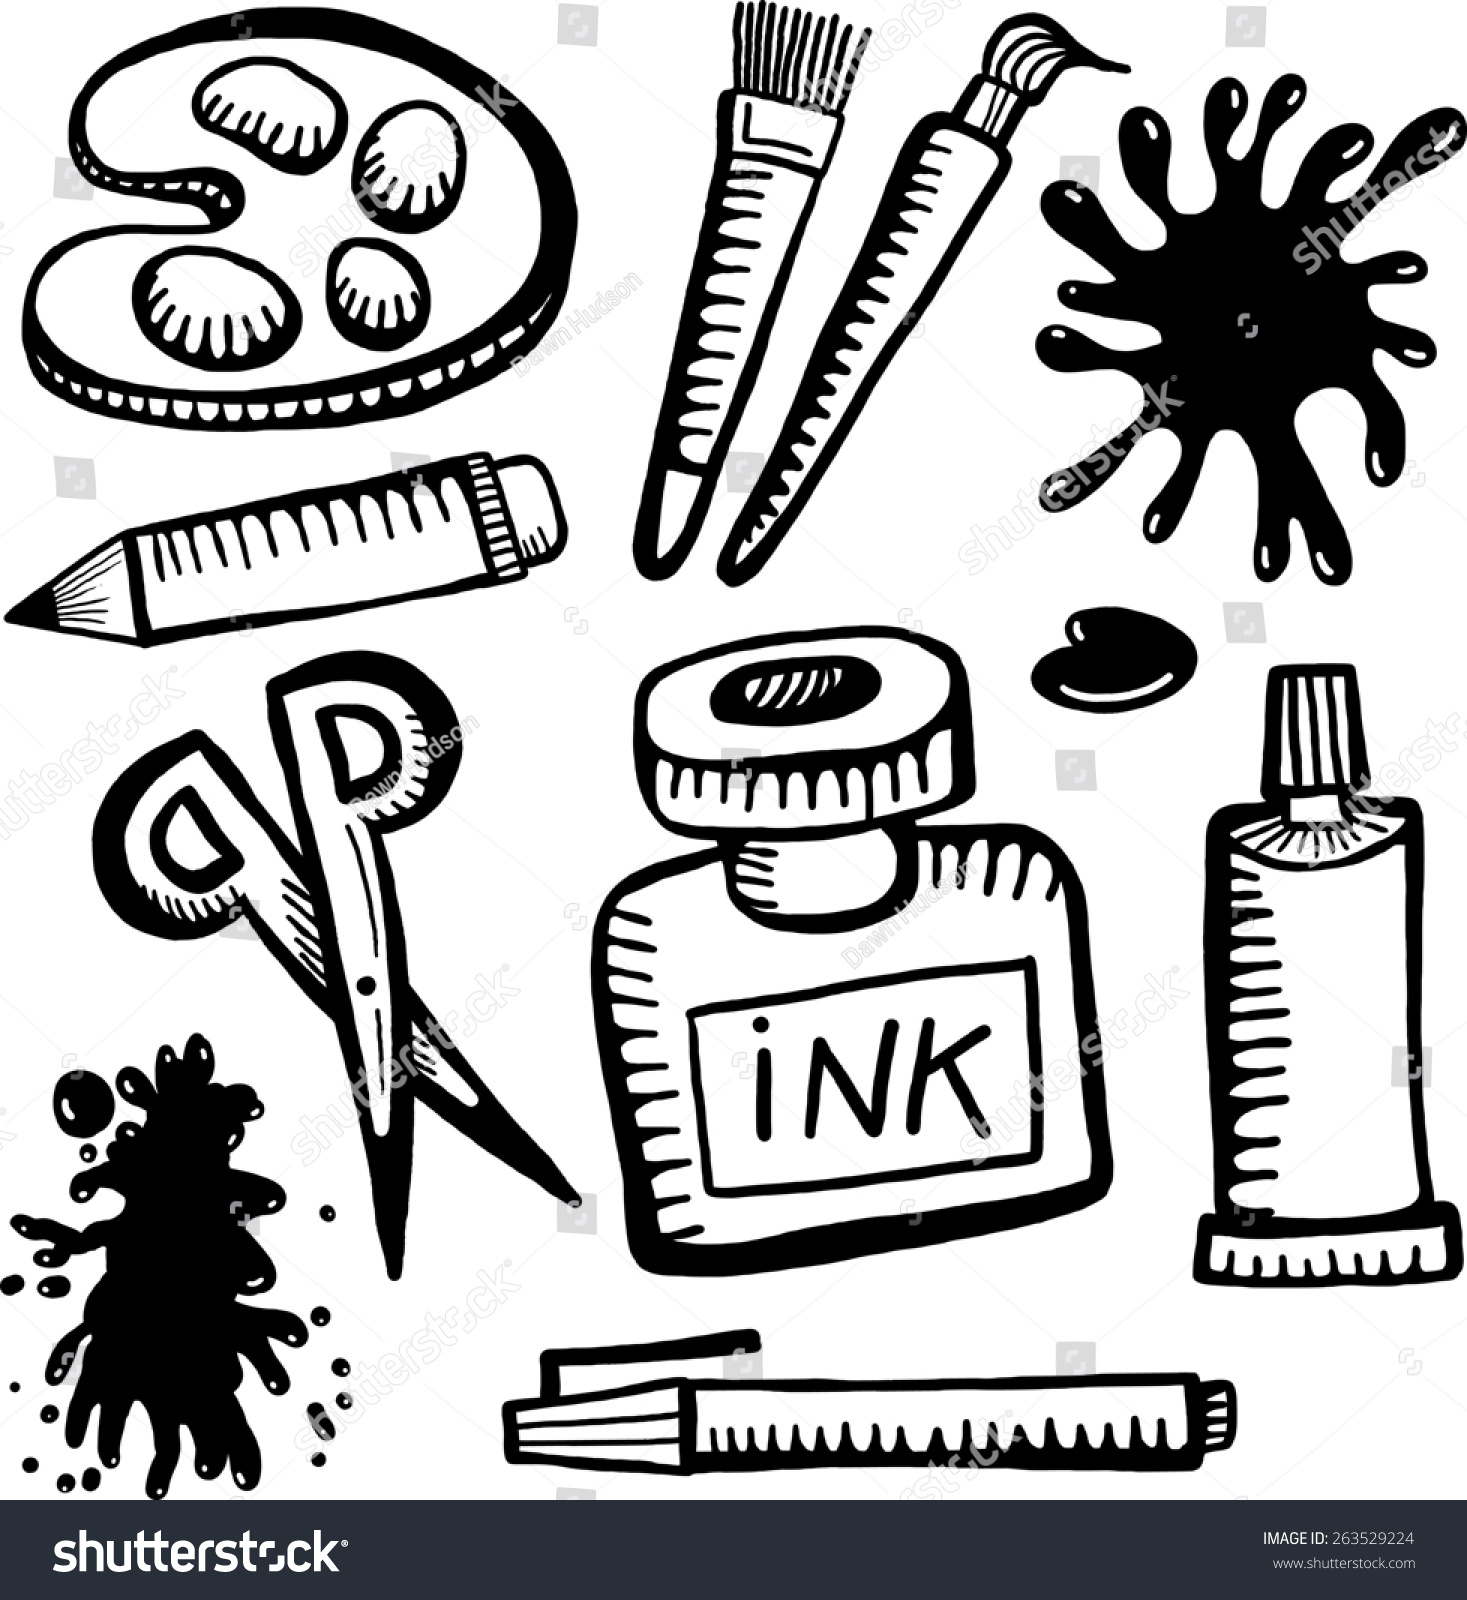 A Set Of Hand Drawn Black And White Doodles Various Art Craft Related Objects